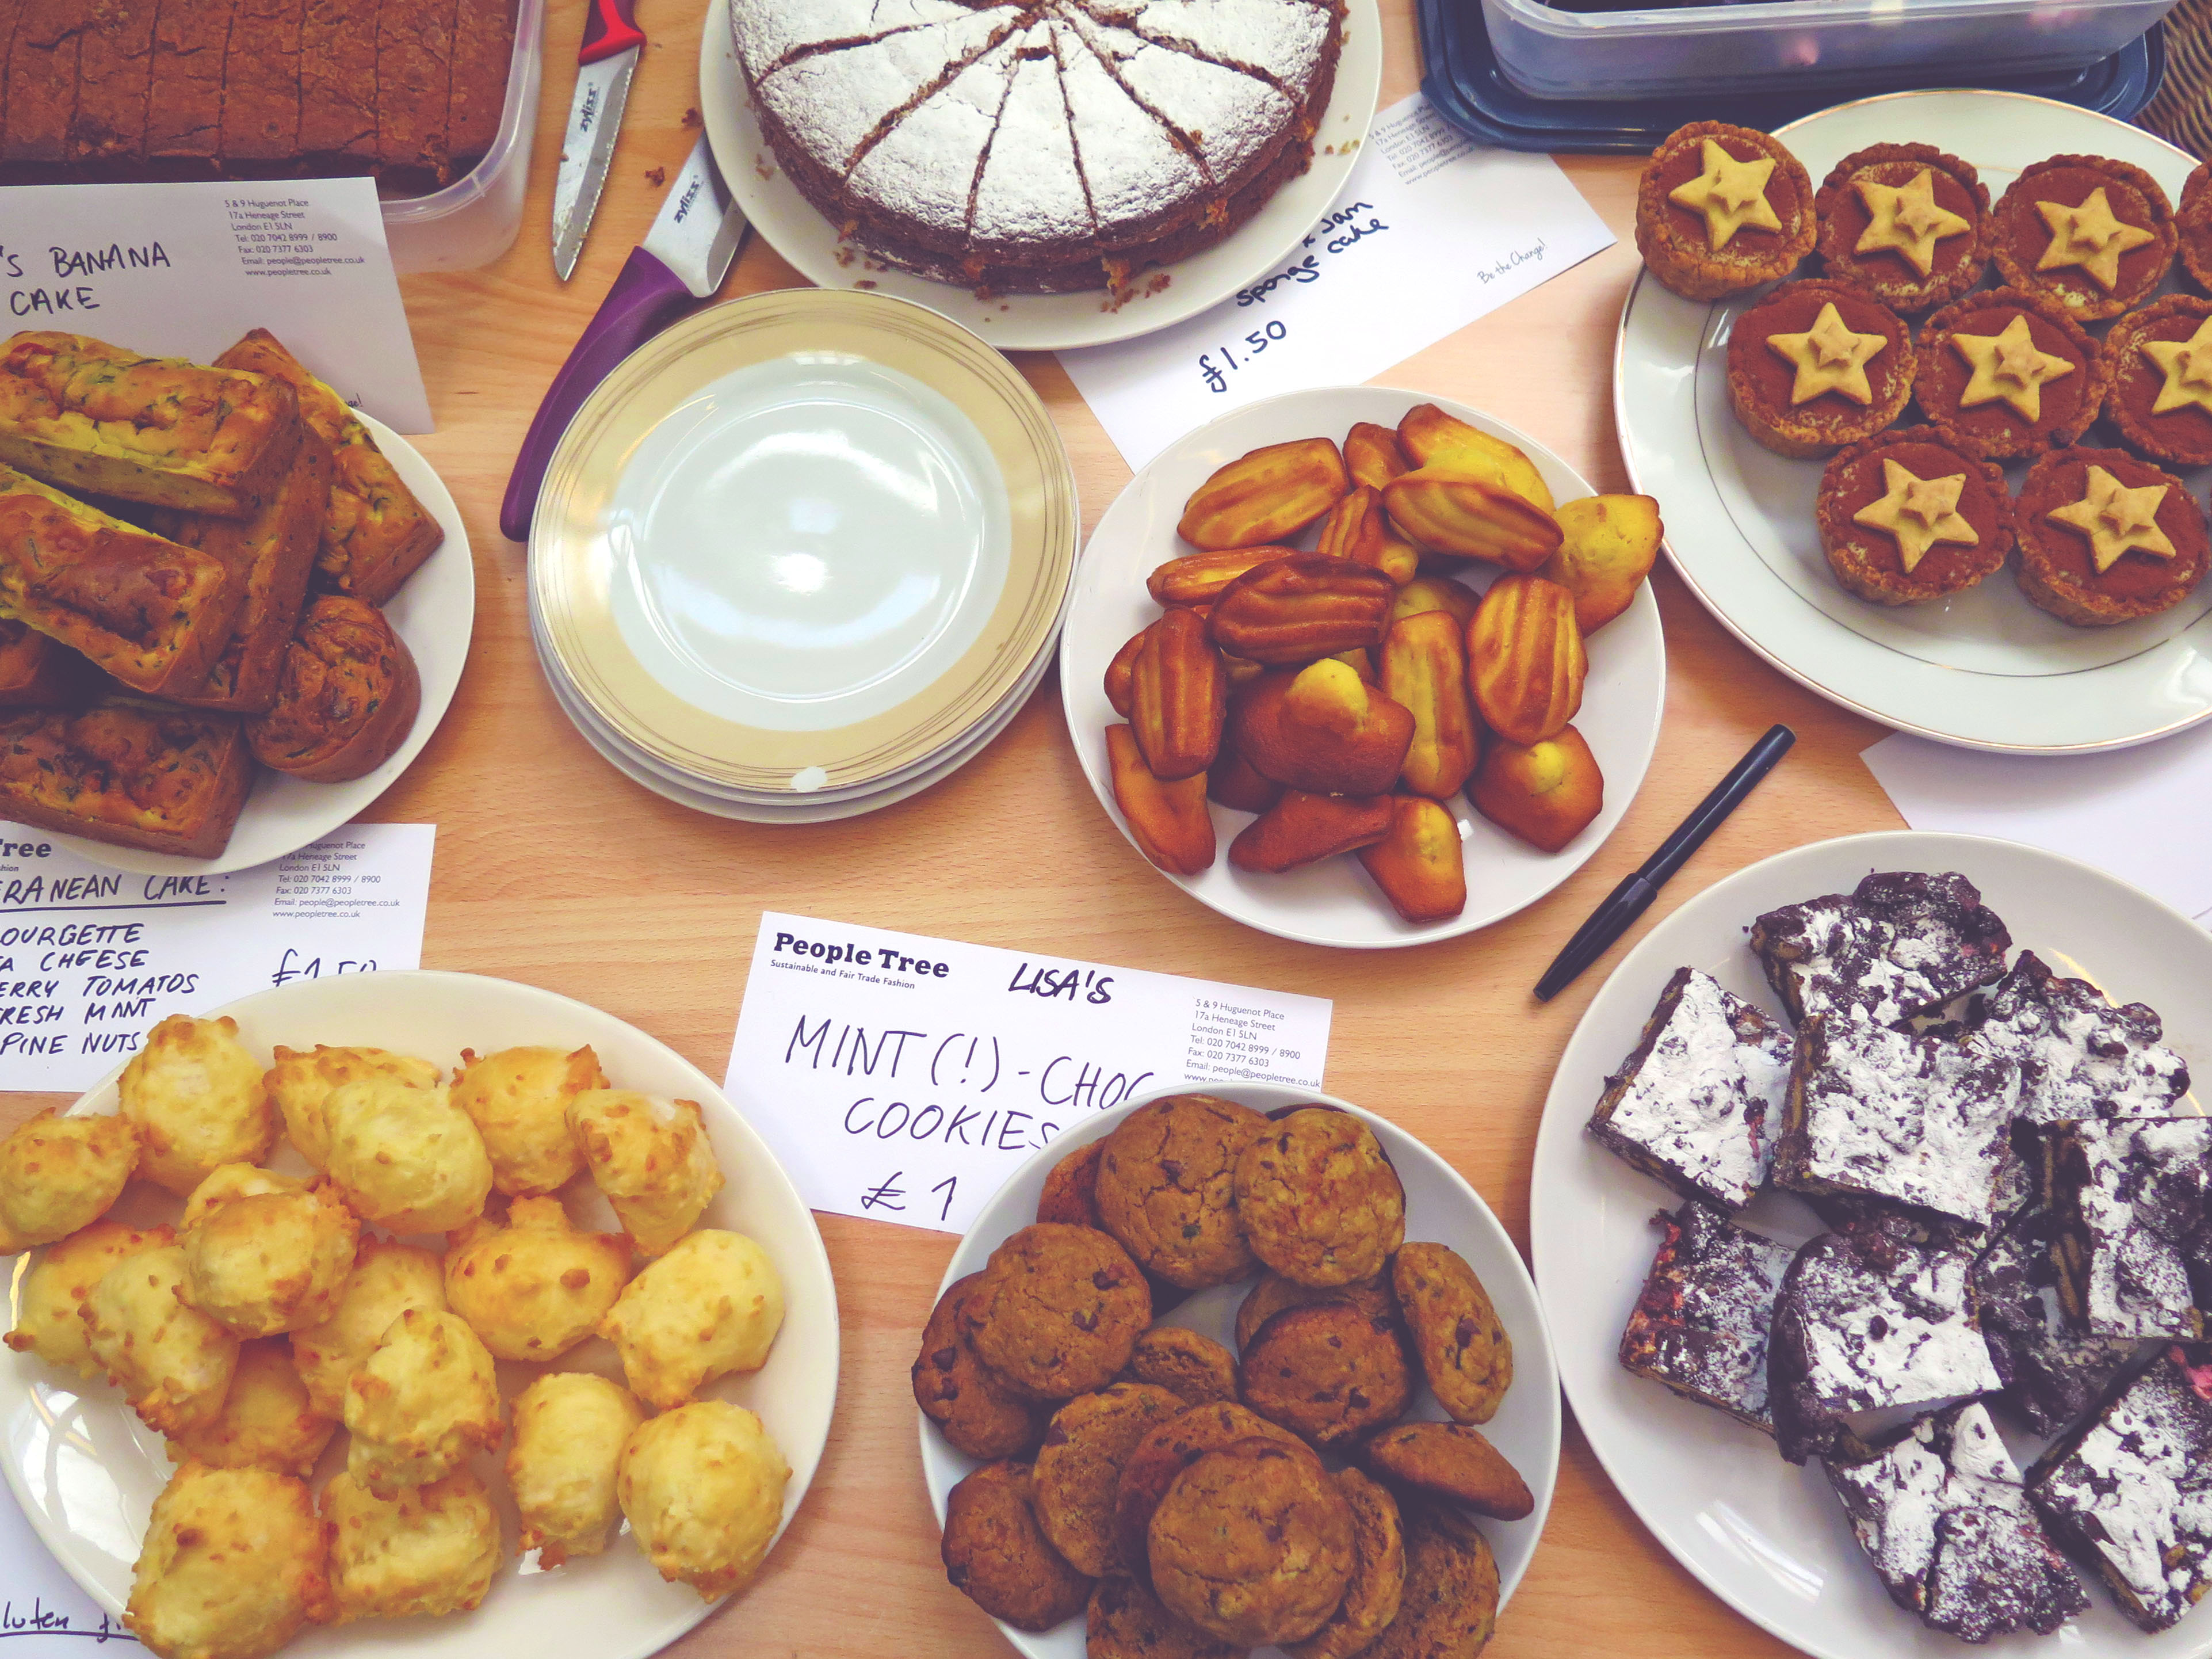 The People Tree bakesale, in pictures